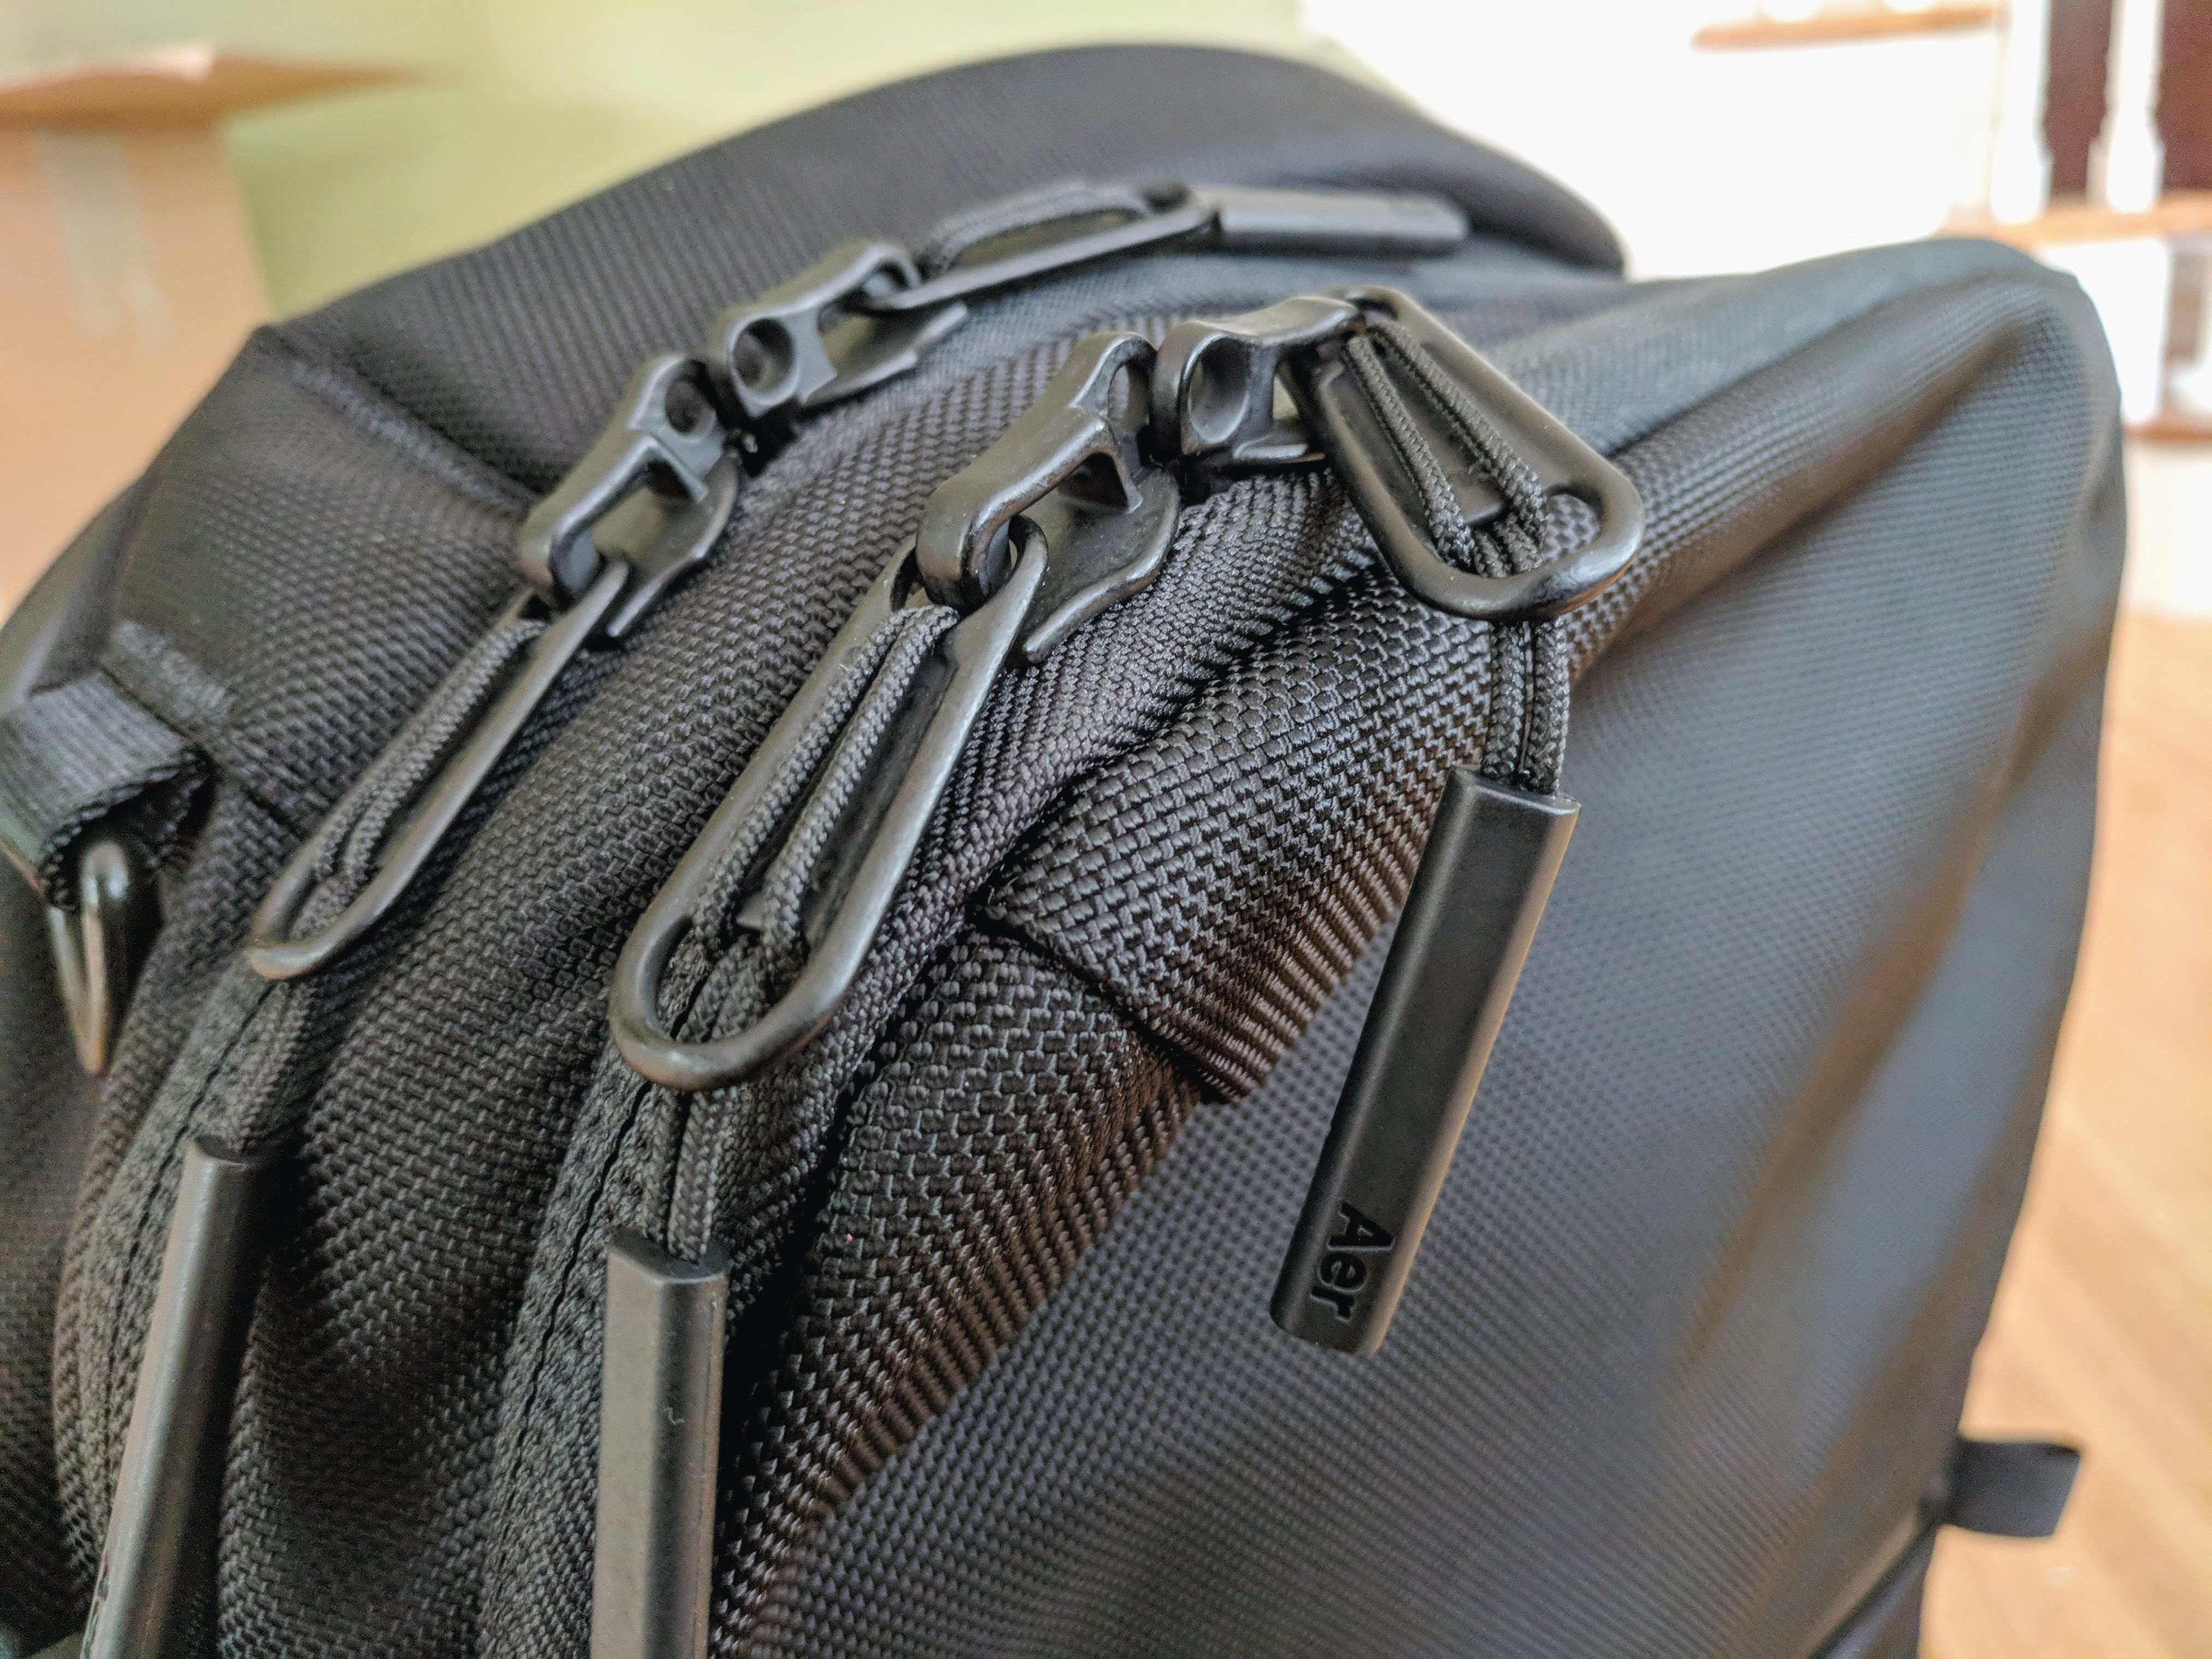 Aer Travel Pack 2 backpack review locking YKK zippers detail